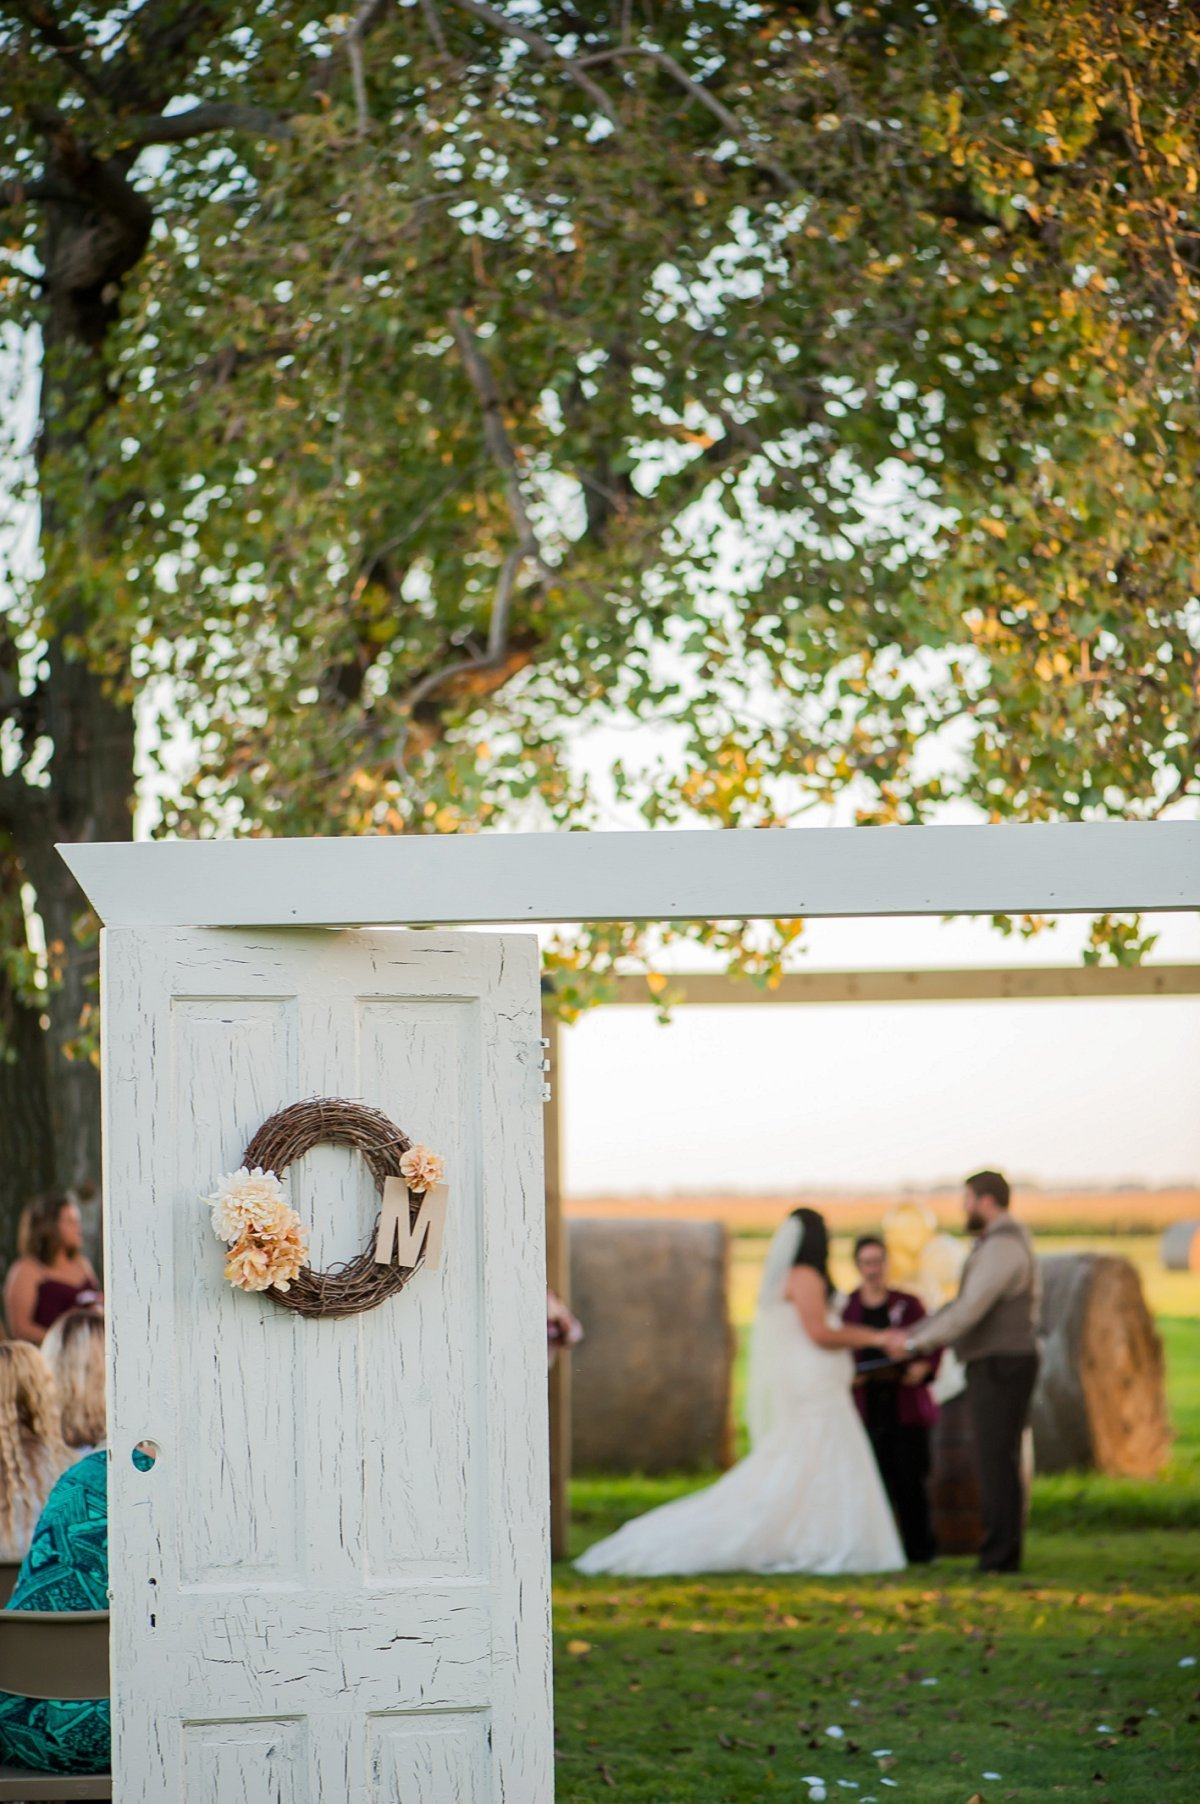 Sunset outdoor wedding ceremony in North Dakota prairies, photos by Fargo Photographer Kris Kandel